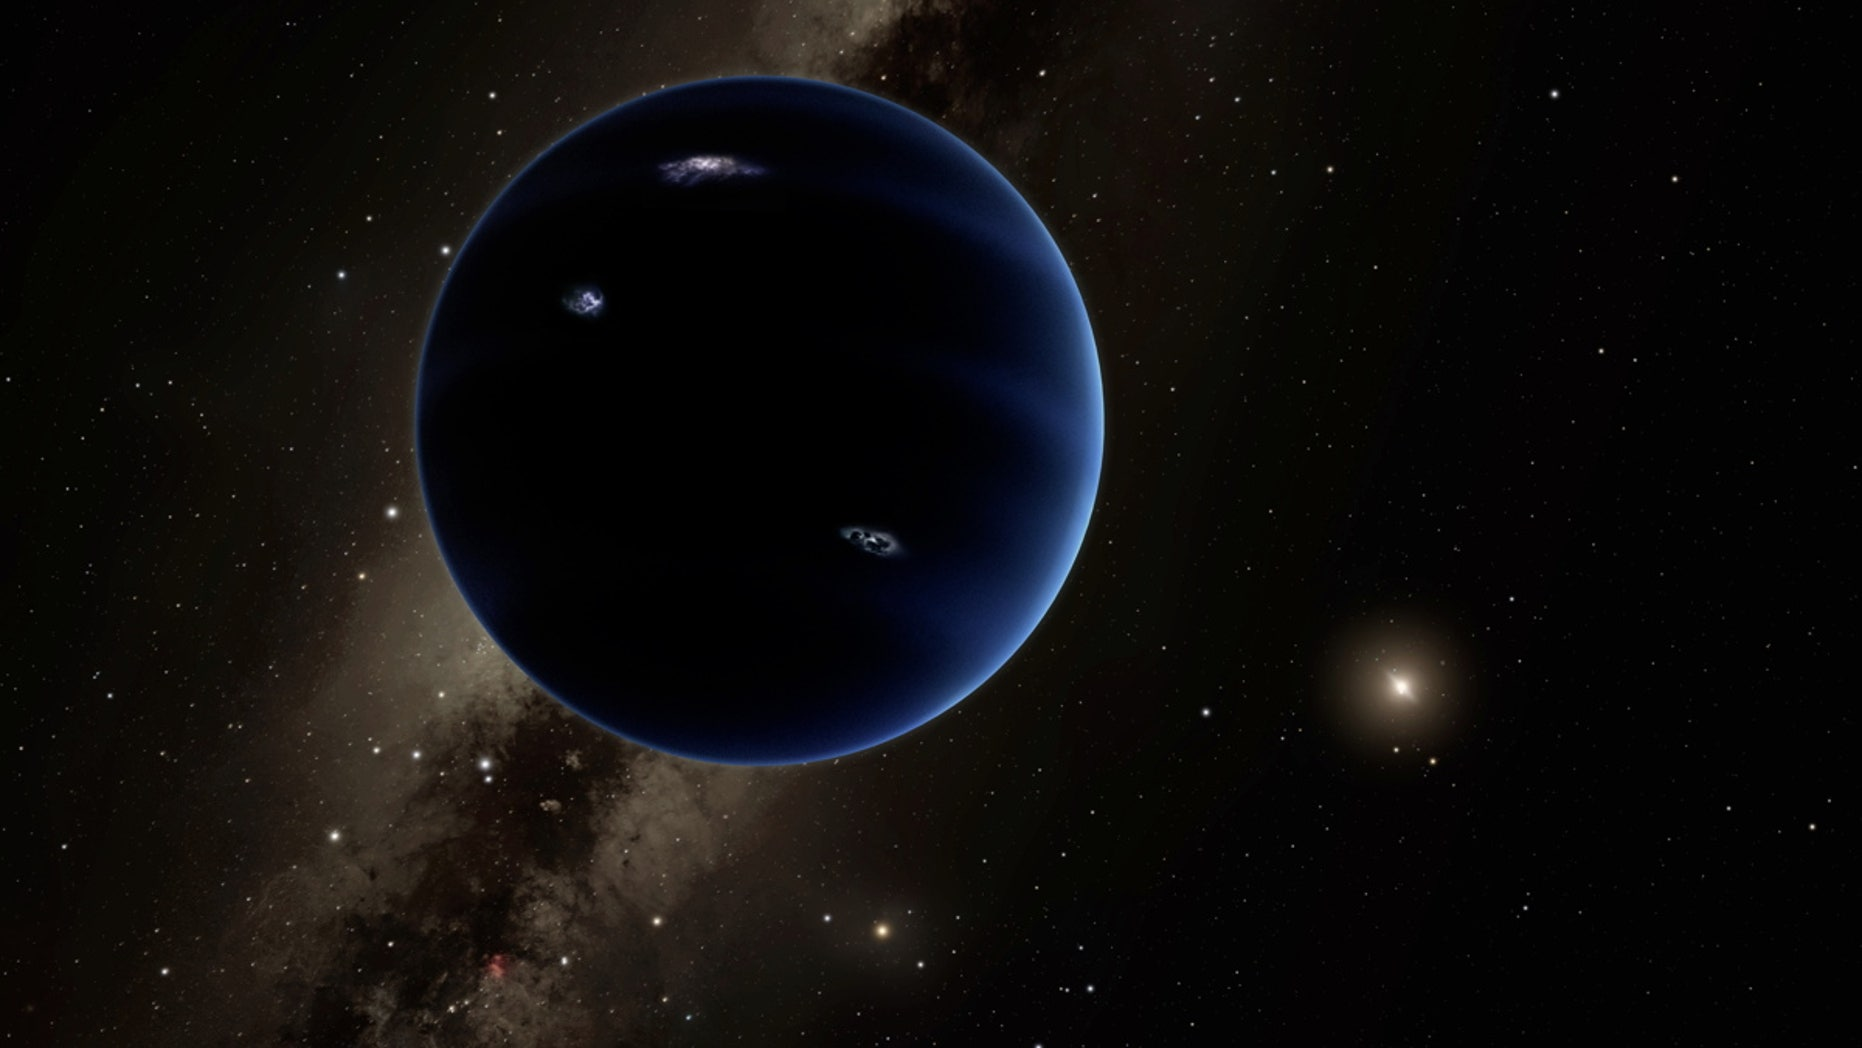 Artist's illustration of Planet Nine, a world about 10 times more massive than Earth that astronomers think may lie undiscovered in the far outer solar system.